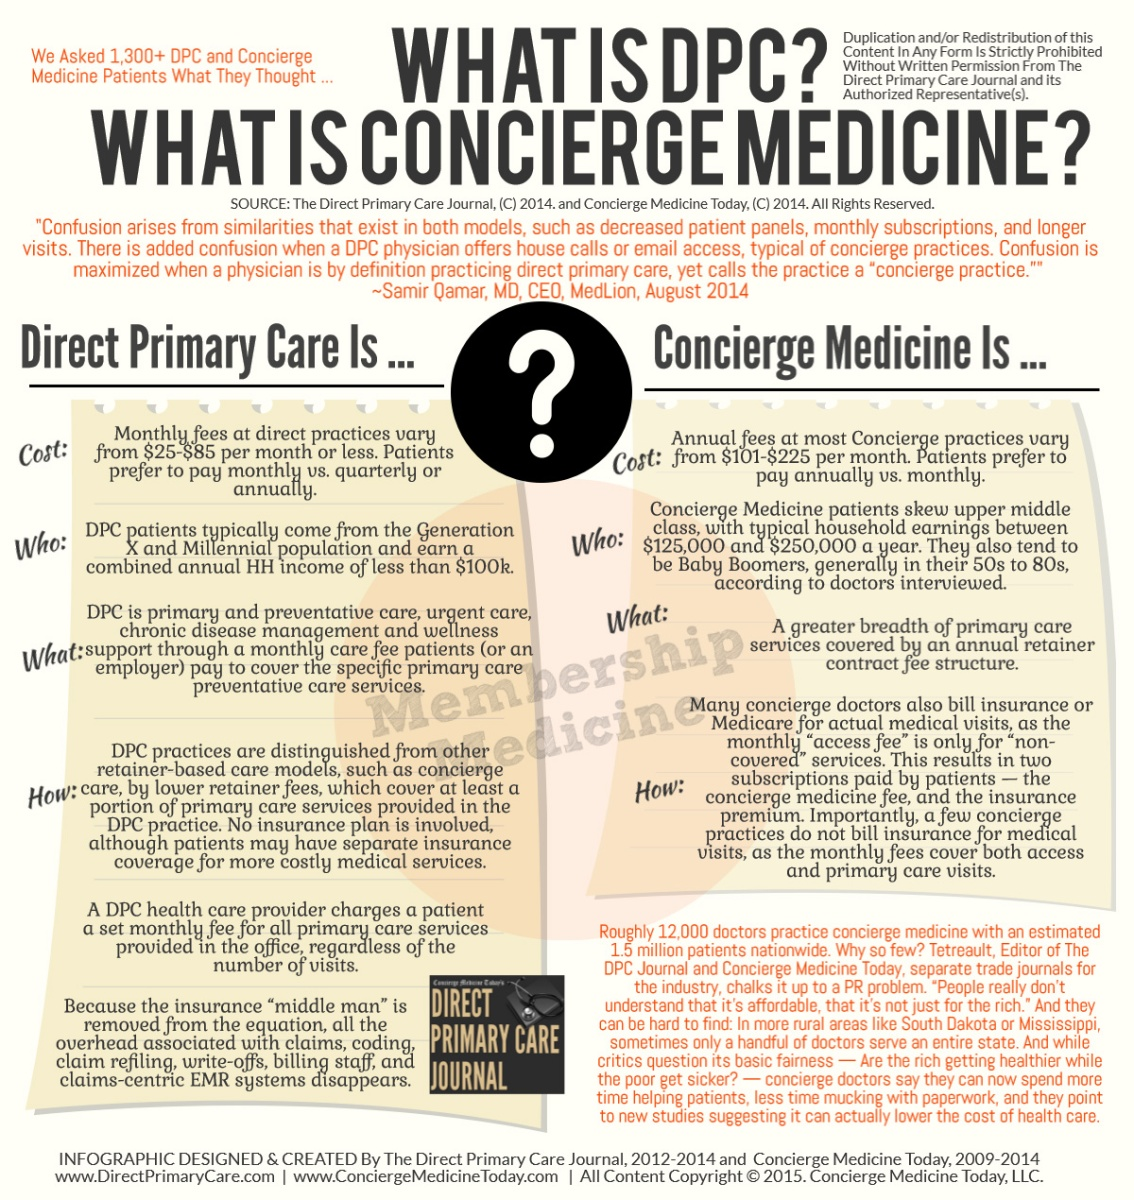 LIPTON: 10 differences between concierge medicine and direct primary care